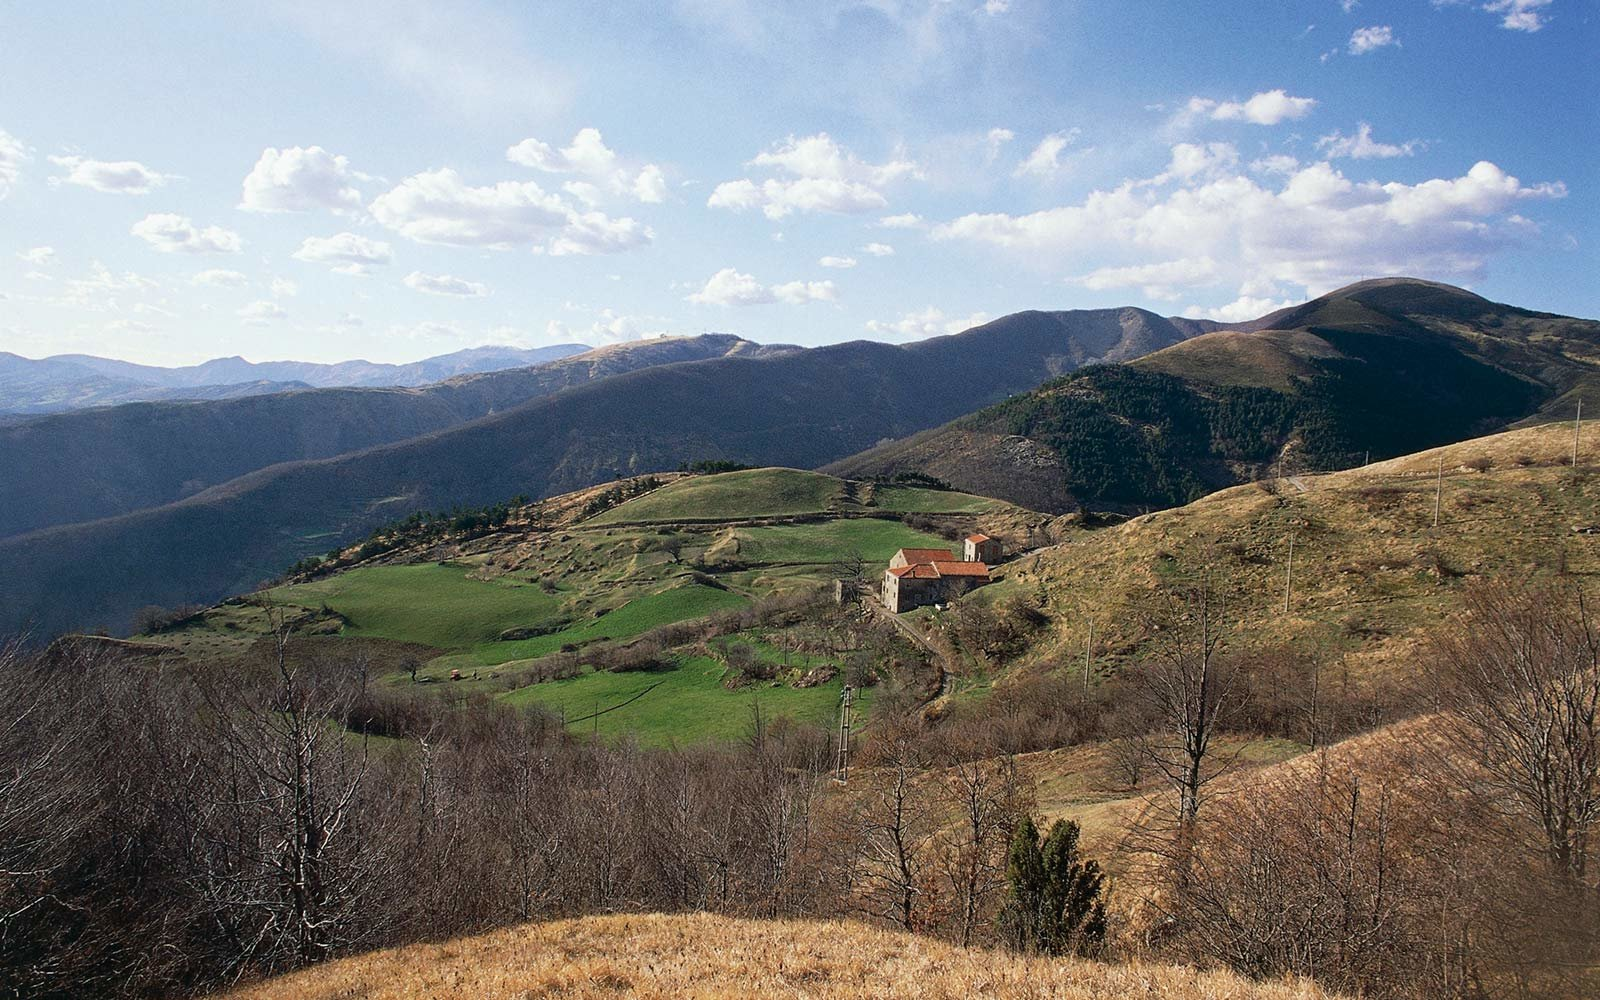 Countryside near Varese Ligure, Liguria, Italy